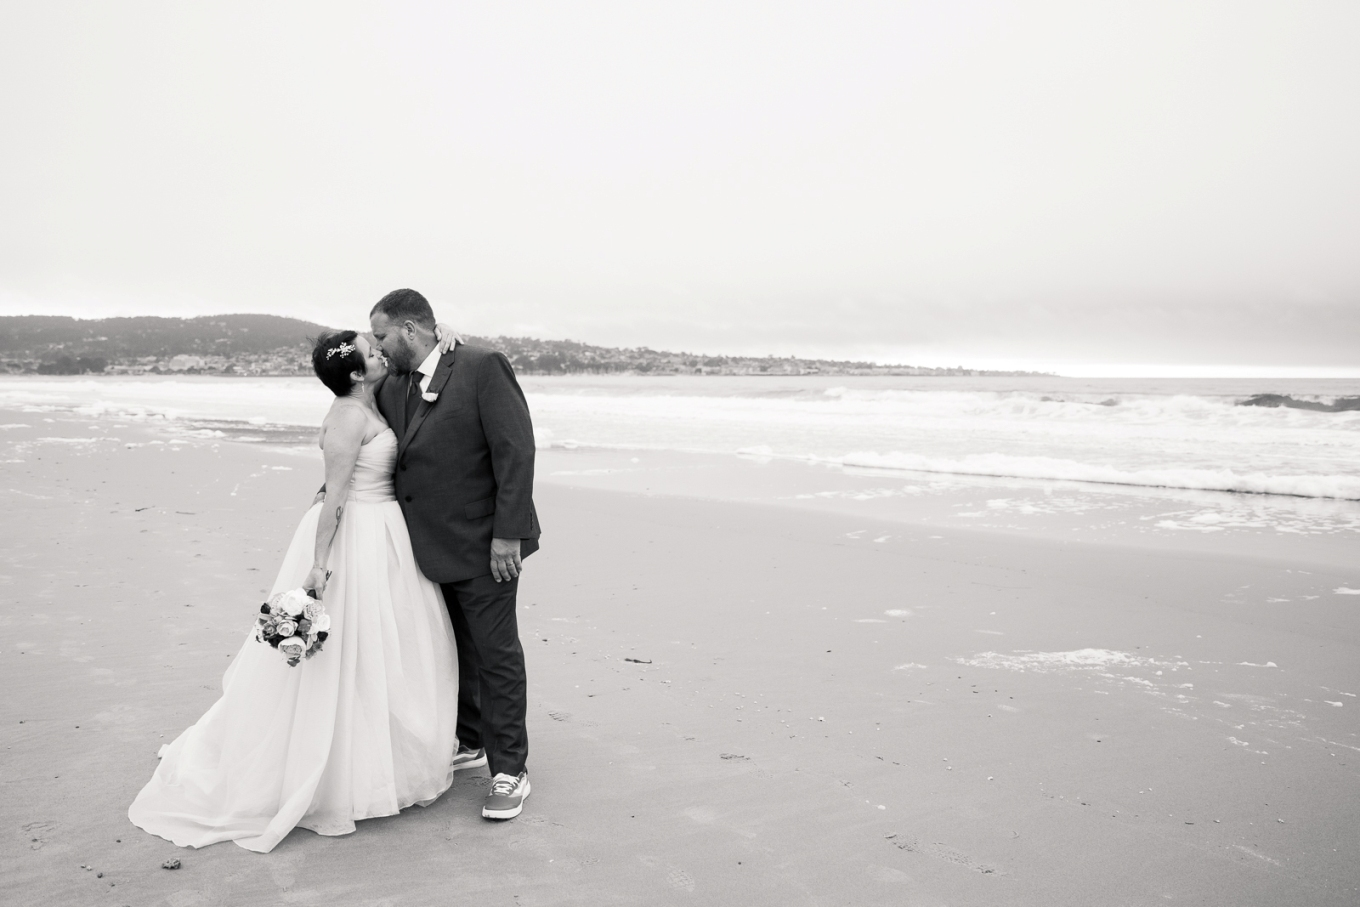 eloping on the beach in Monterey